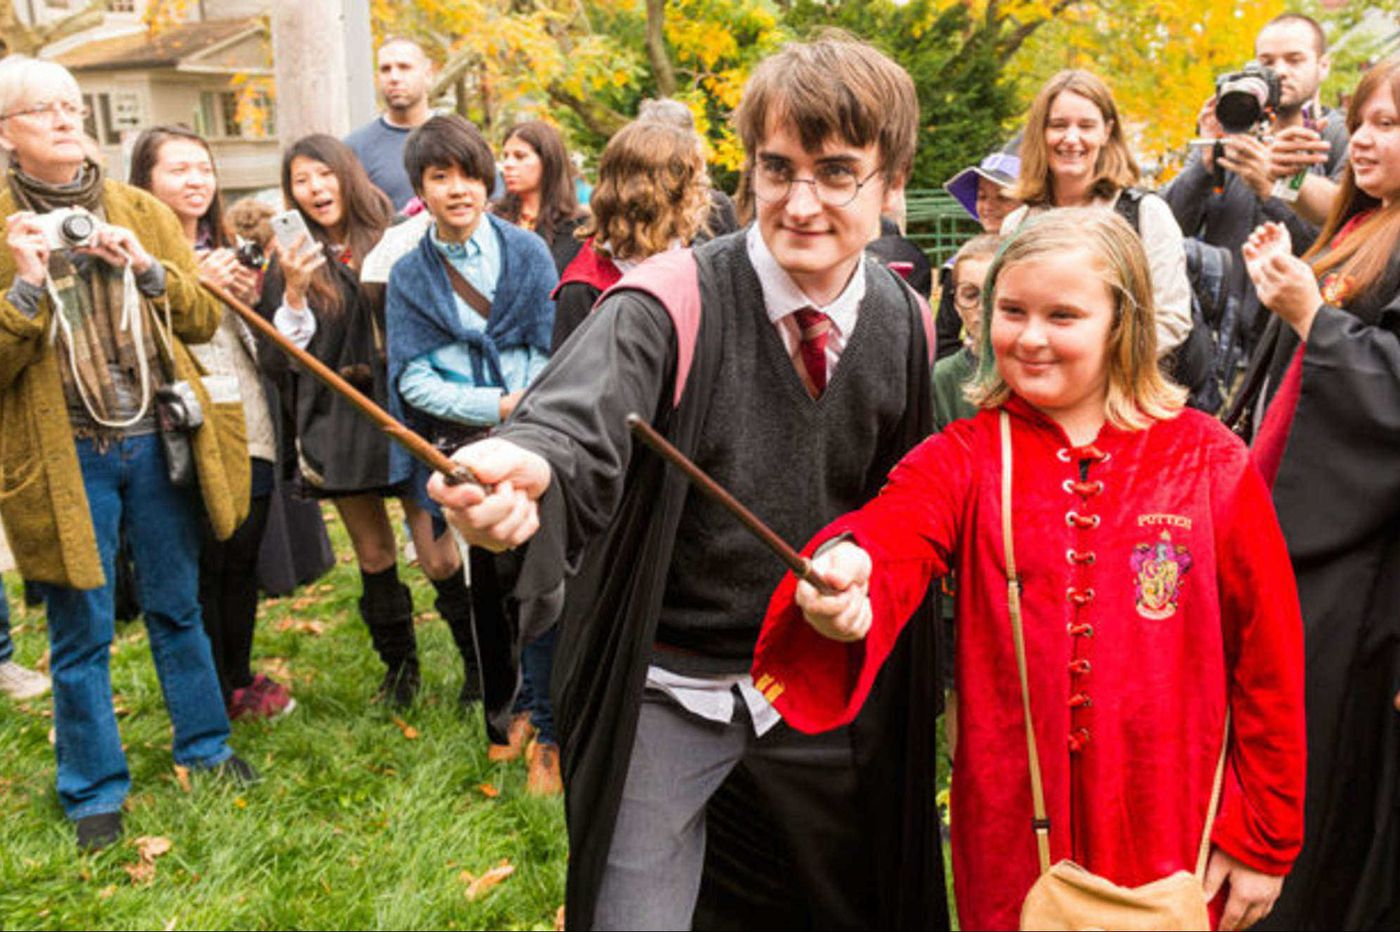 Harry Potter Festival in Chestnut Hill canceled due to legal pressure from Warner Bros.